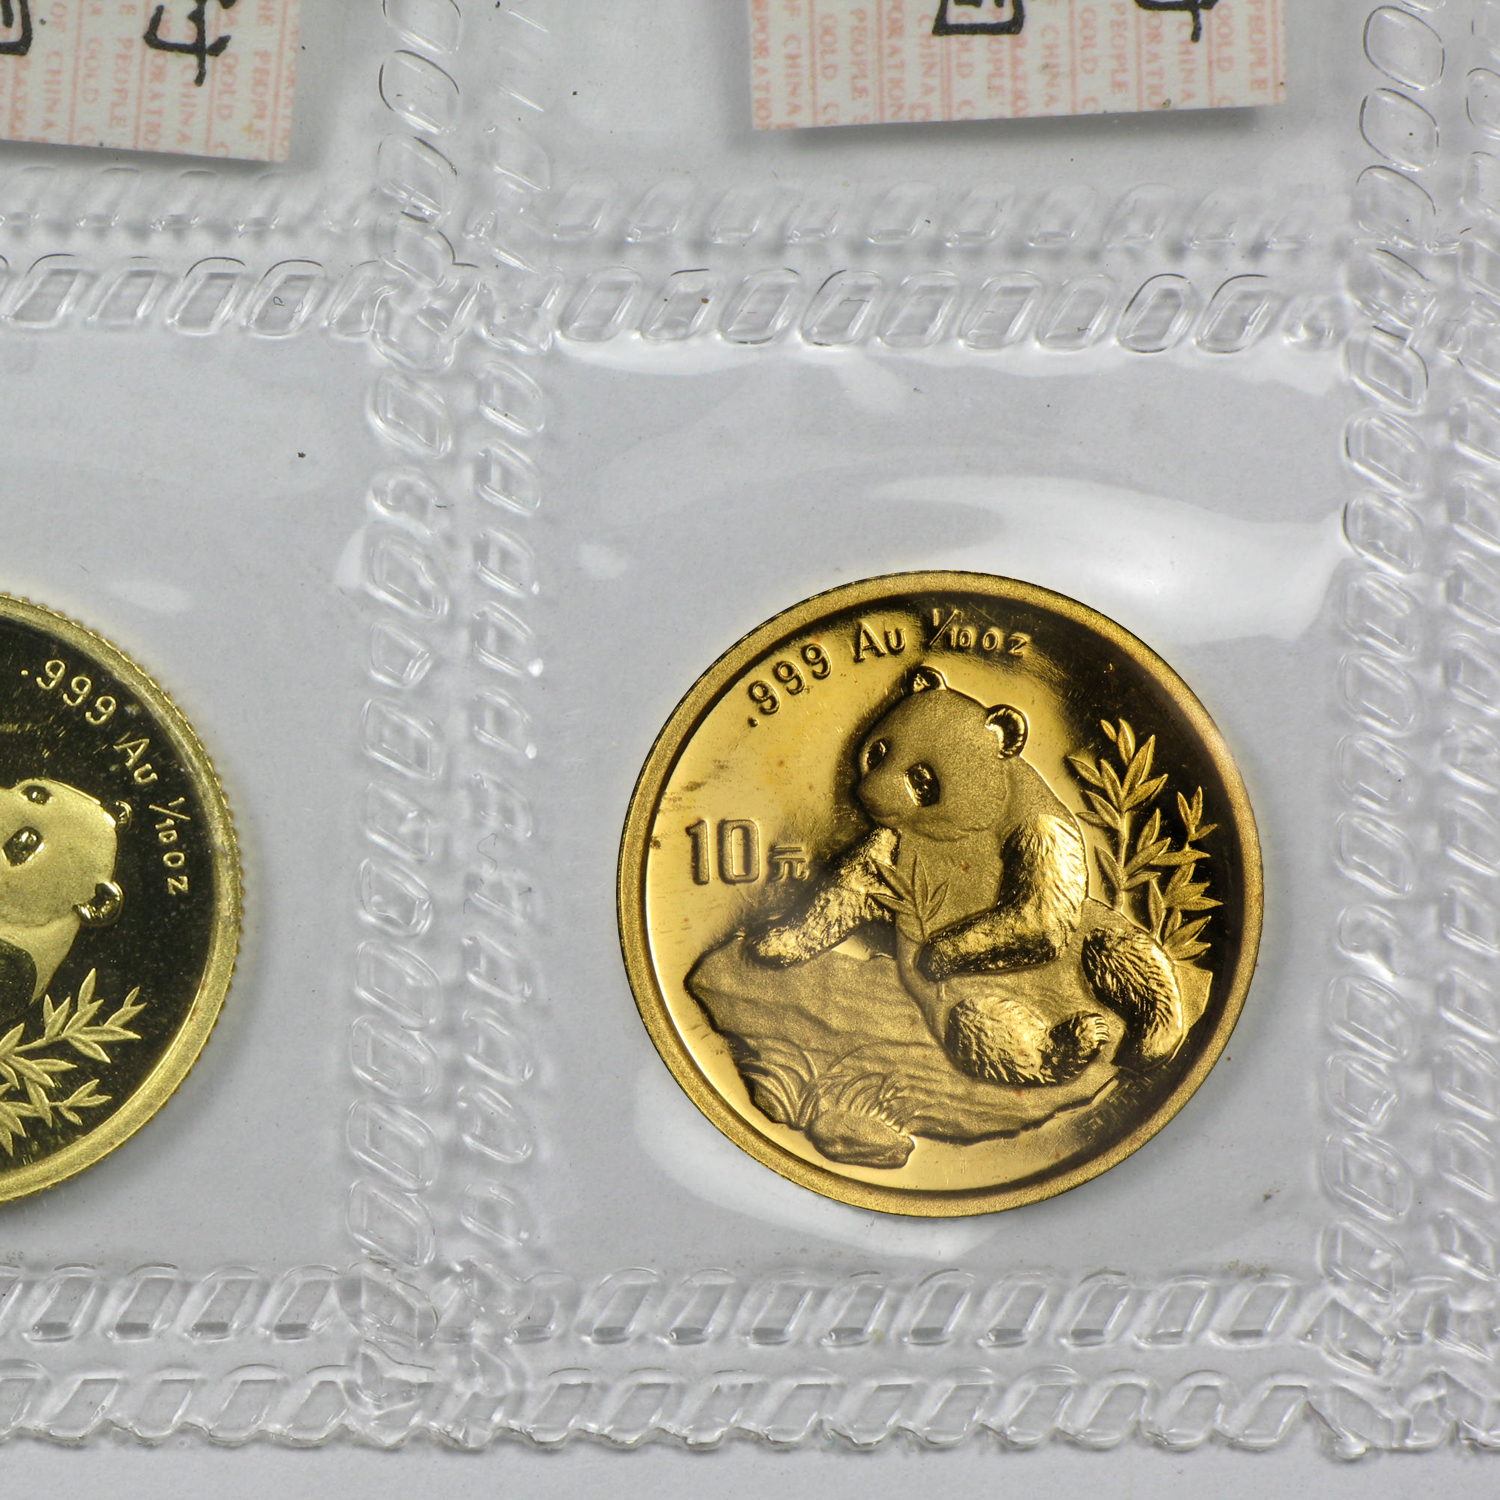 1998 China 1/10 oz Gold Panda Sm Date BU (Sealed Sheet of 10)